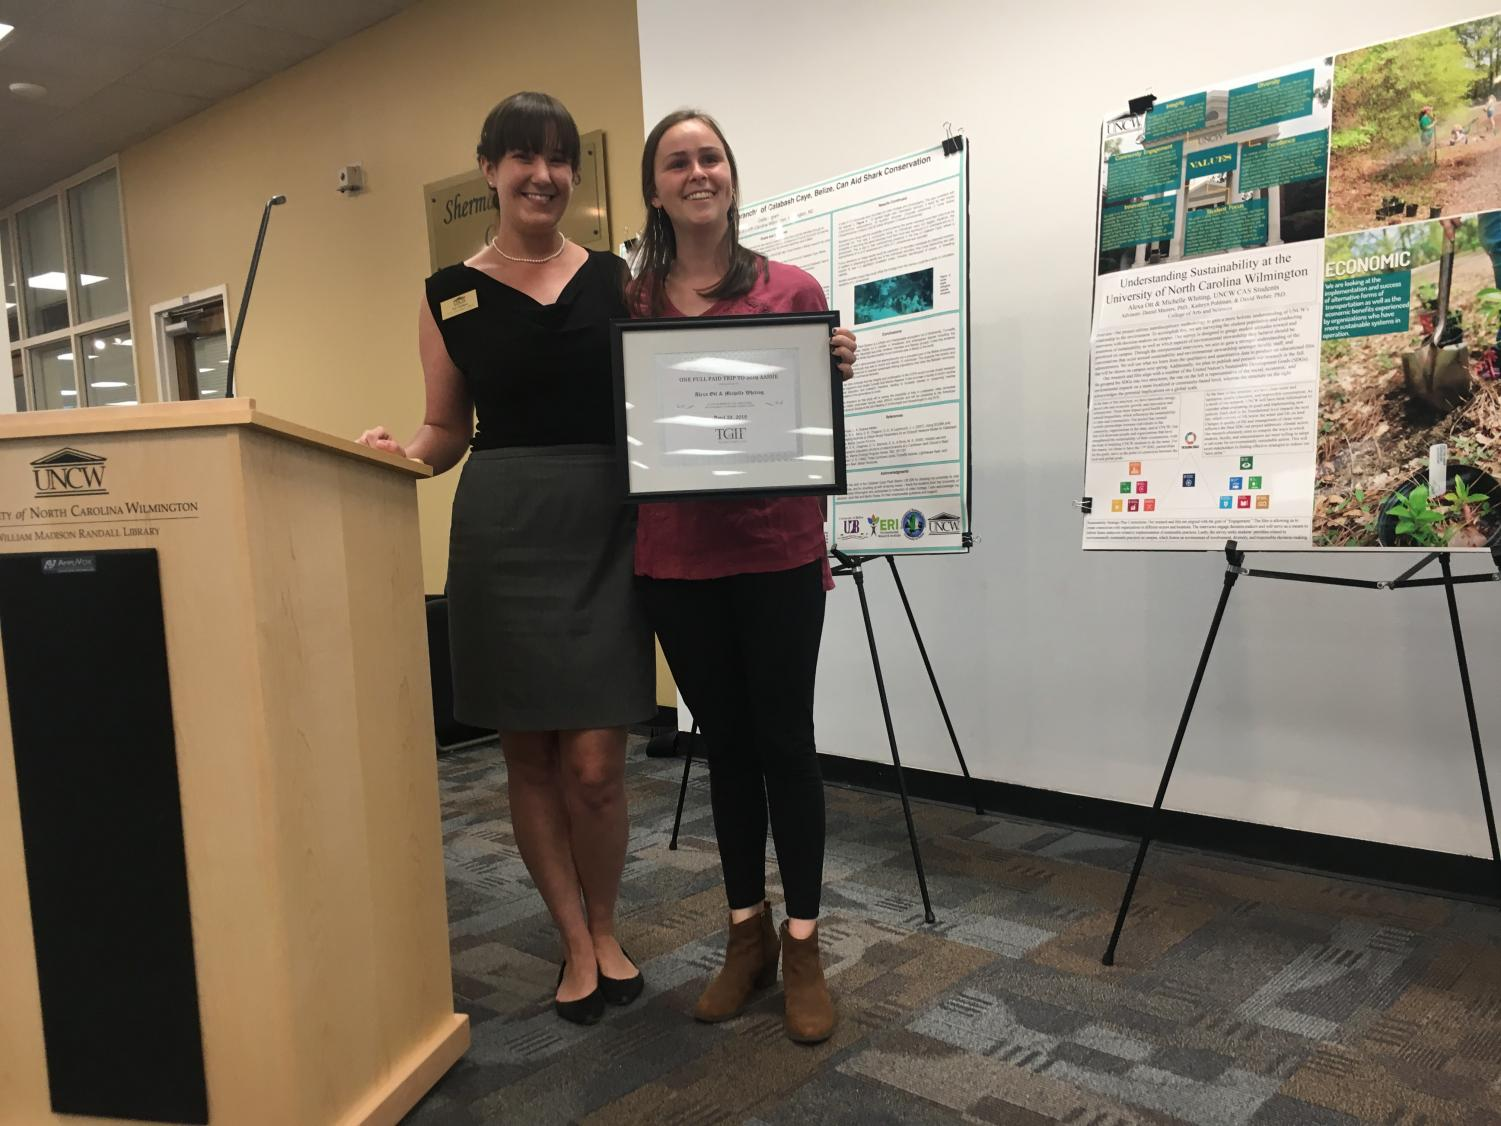 From left to right: Kathryn Pohlman, Environmental Health Safety Sustainability Captain, and Alexis Otts, psychology major who was awarded for her work on her sustainability project.